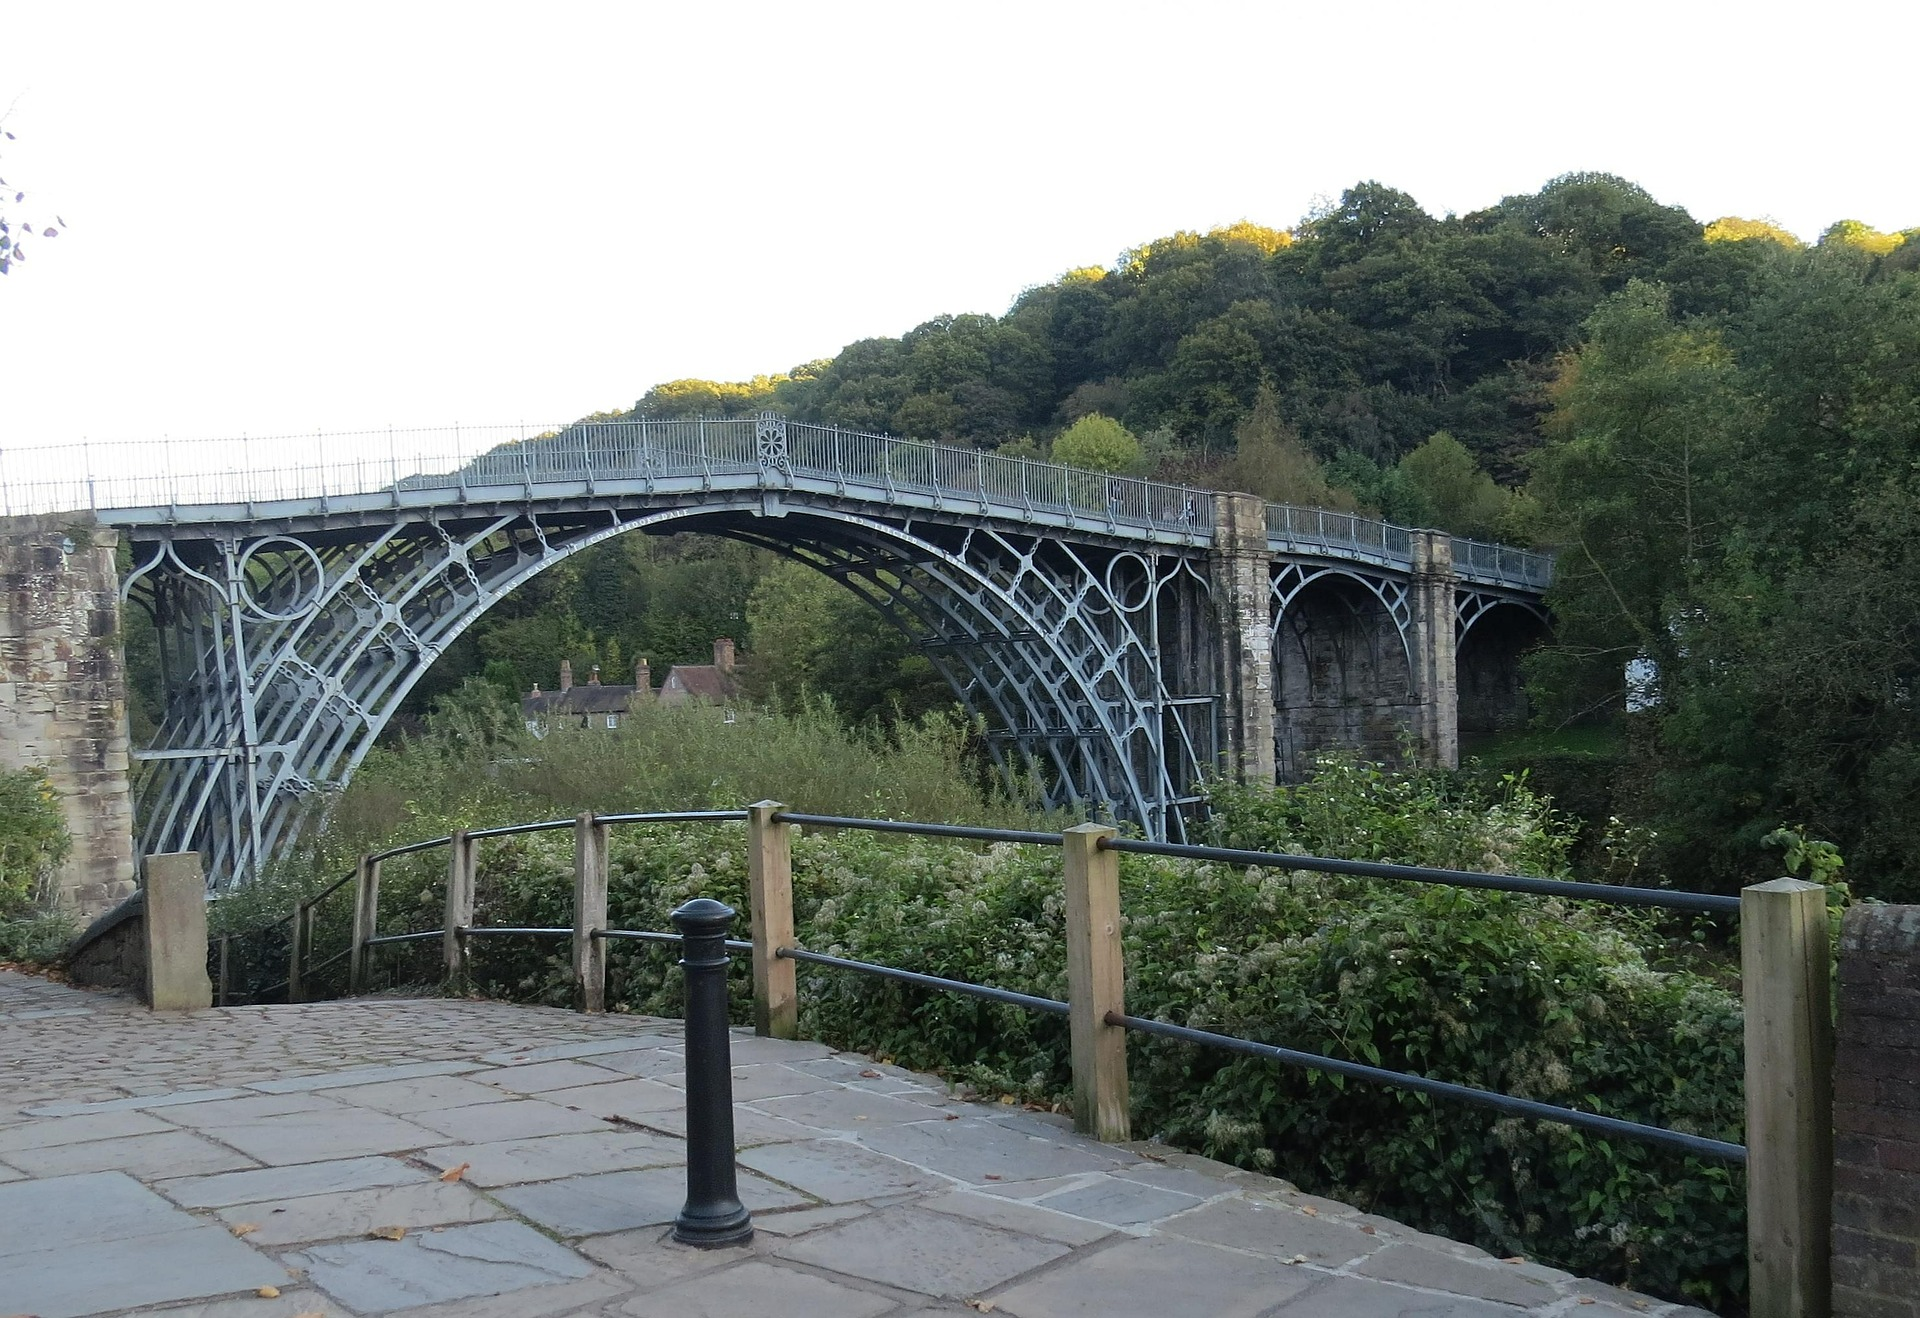 Image of a Shropshire Iron Bridge